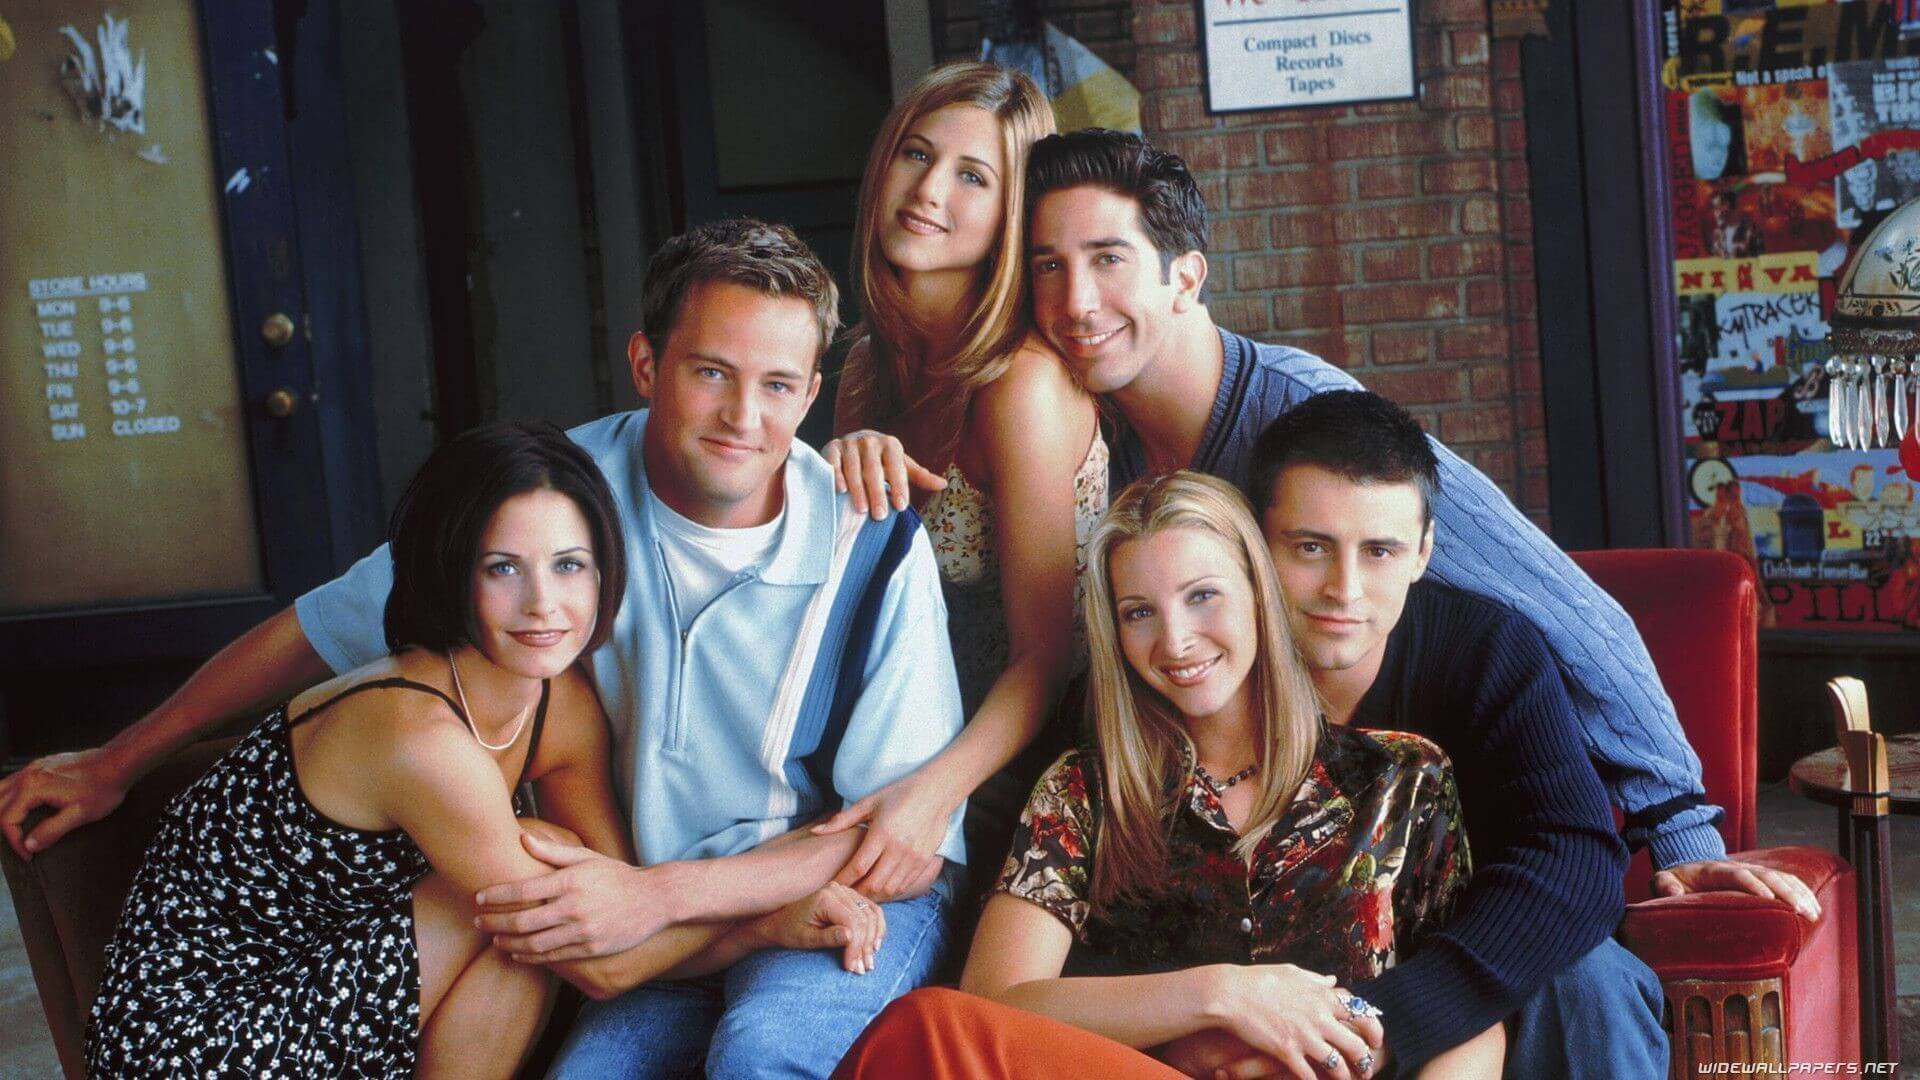 A Friends Reunion Episode Is Coming To HBO Max